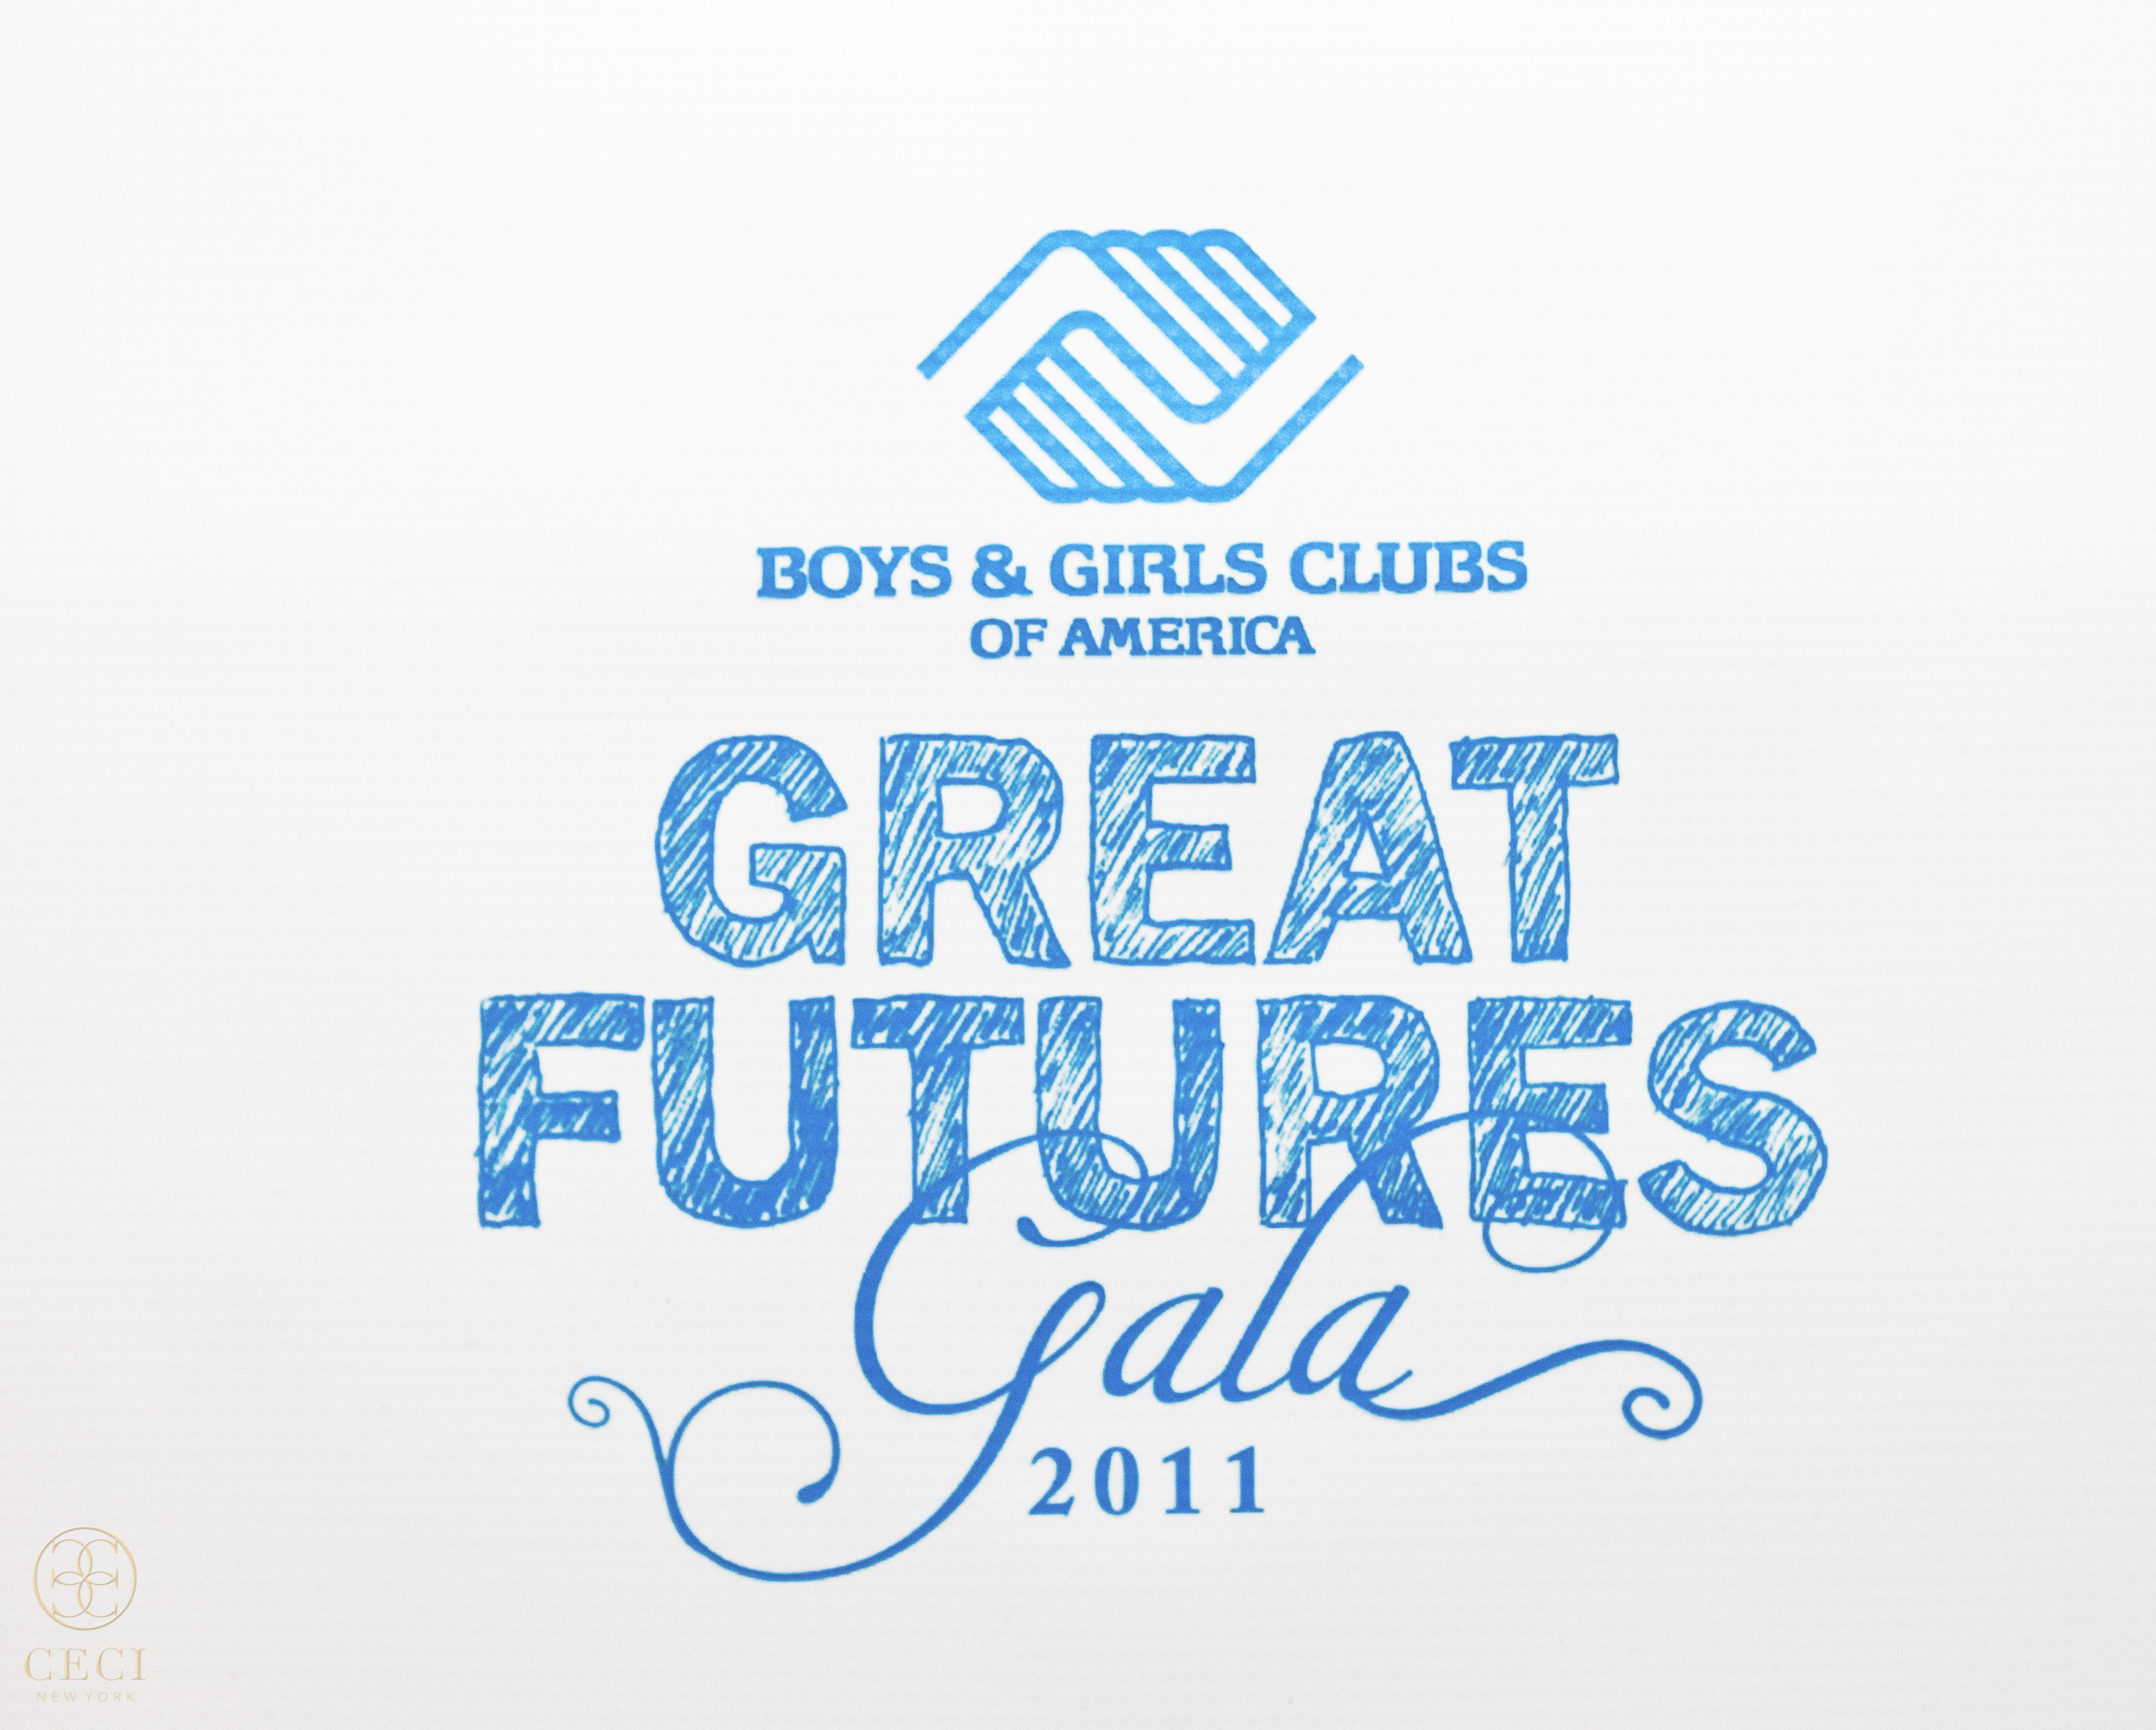 ceci-new-york-gives-back-boys-and-girls-club-of-america-great-futures-gala-2011-invitations-design-paper-accessories-signage-15.jpg